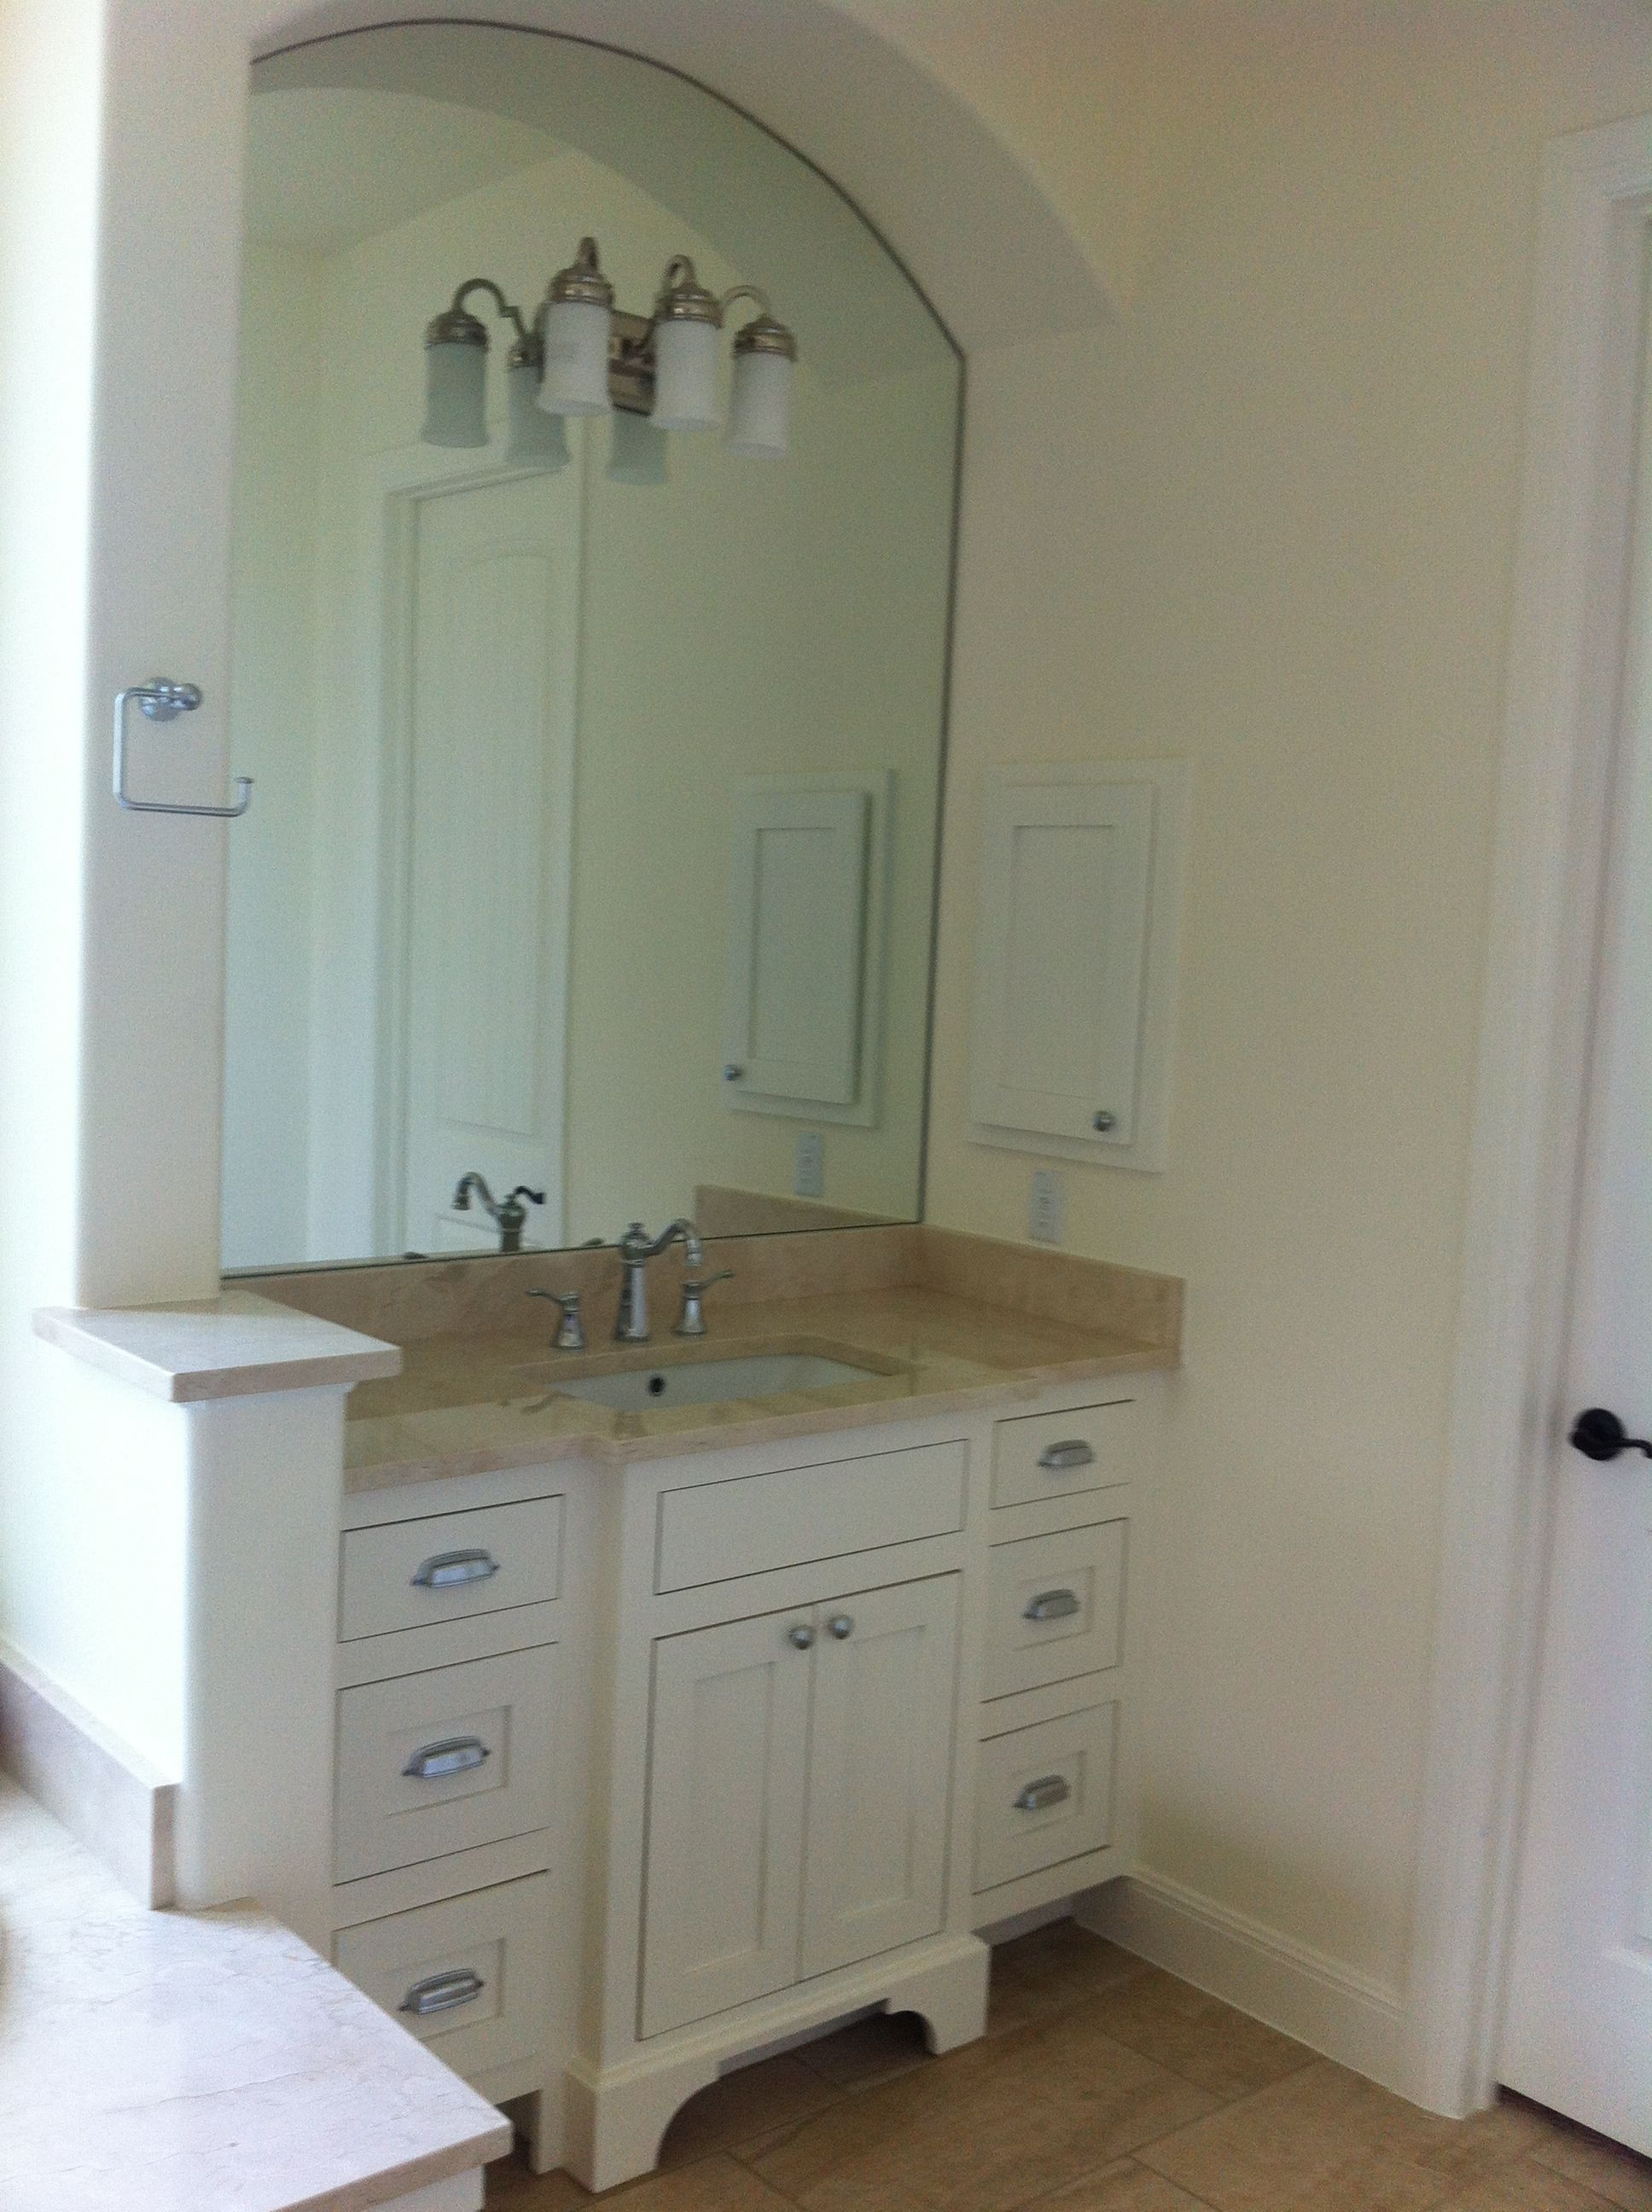 x bathroom exquisite fabulous top for regarding rectangular bath on shop kraftmaid mirrors kaffe restoration in farmhouse vanity hardware framed